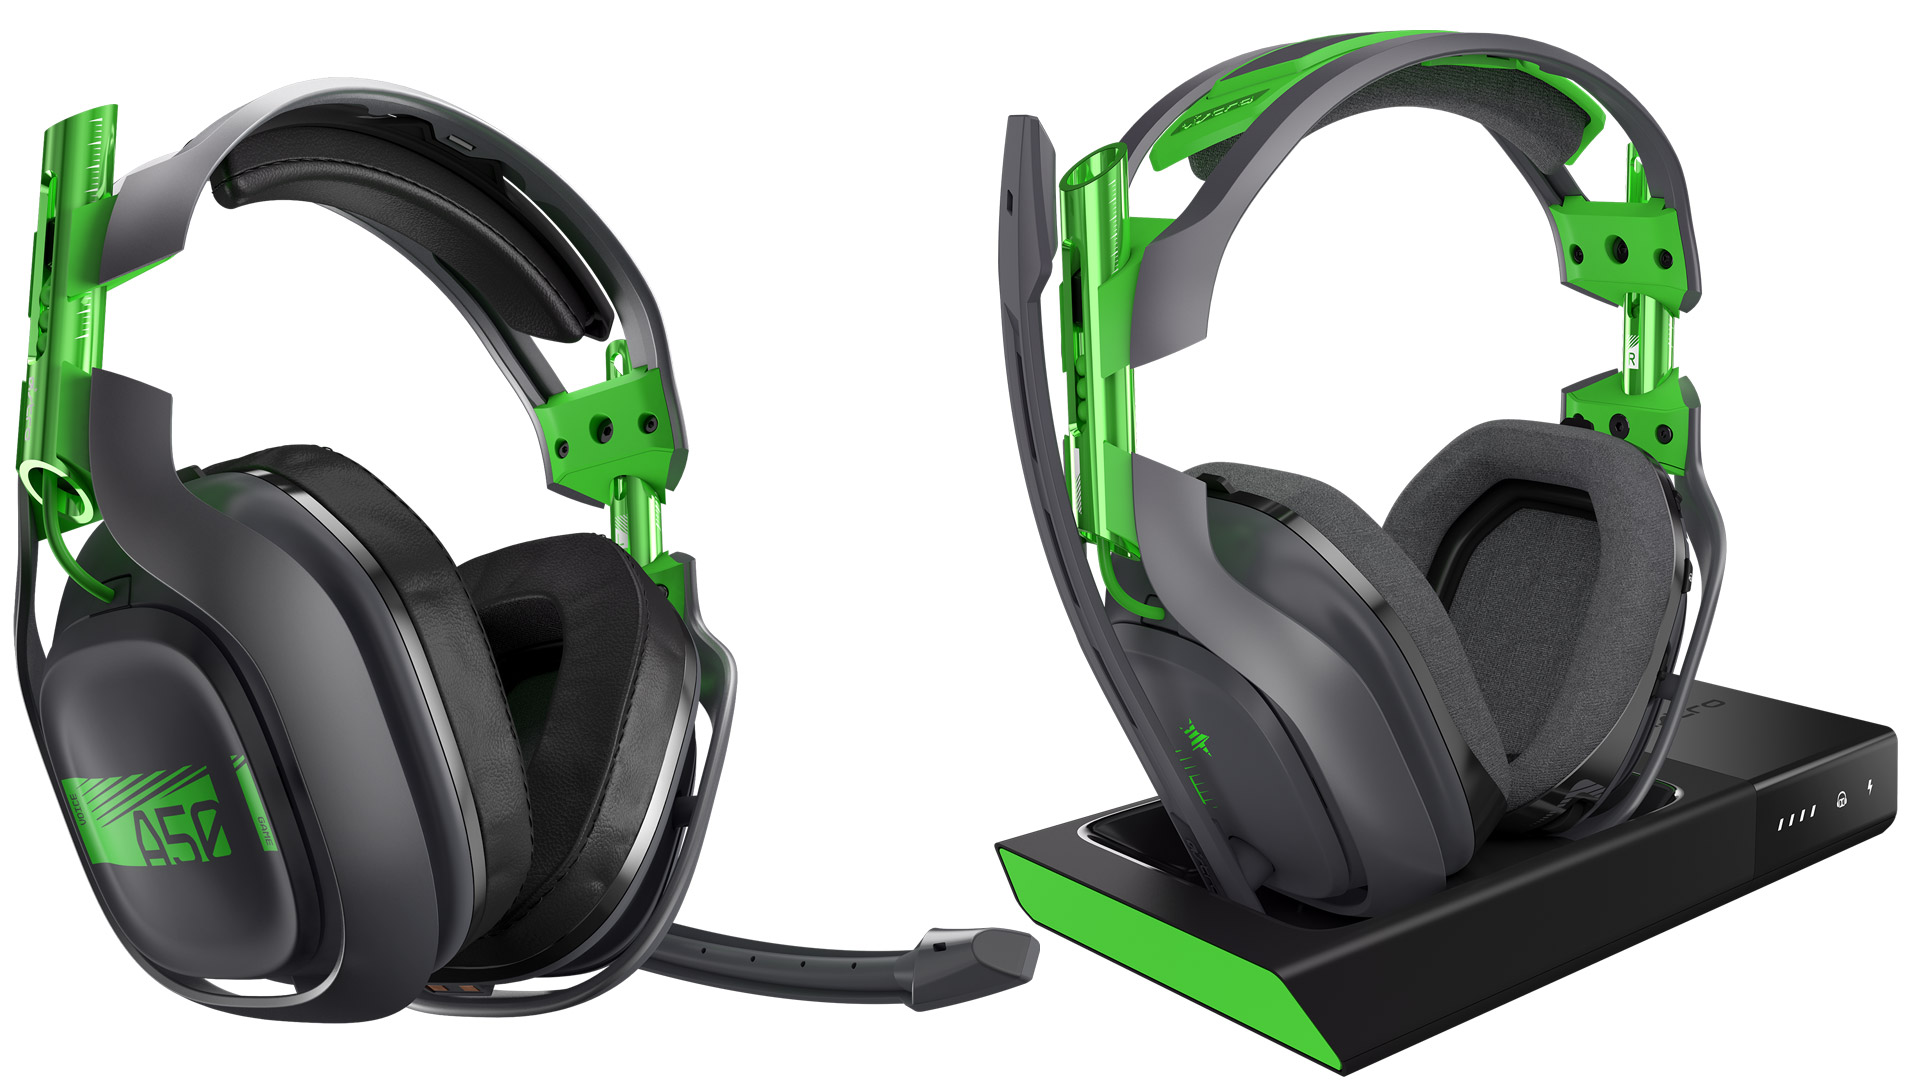 Astro a50 Xbox One Green Wireless Headset E3 2016 Impressions